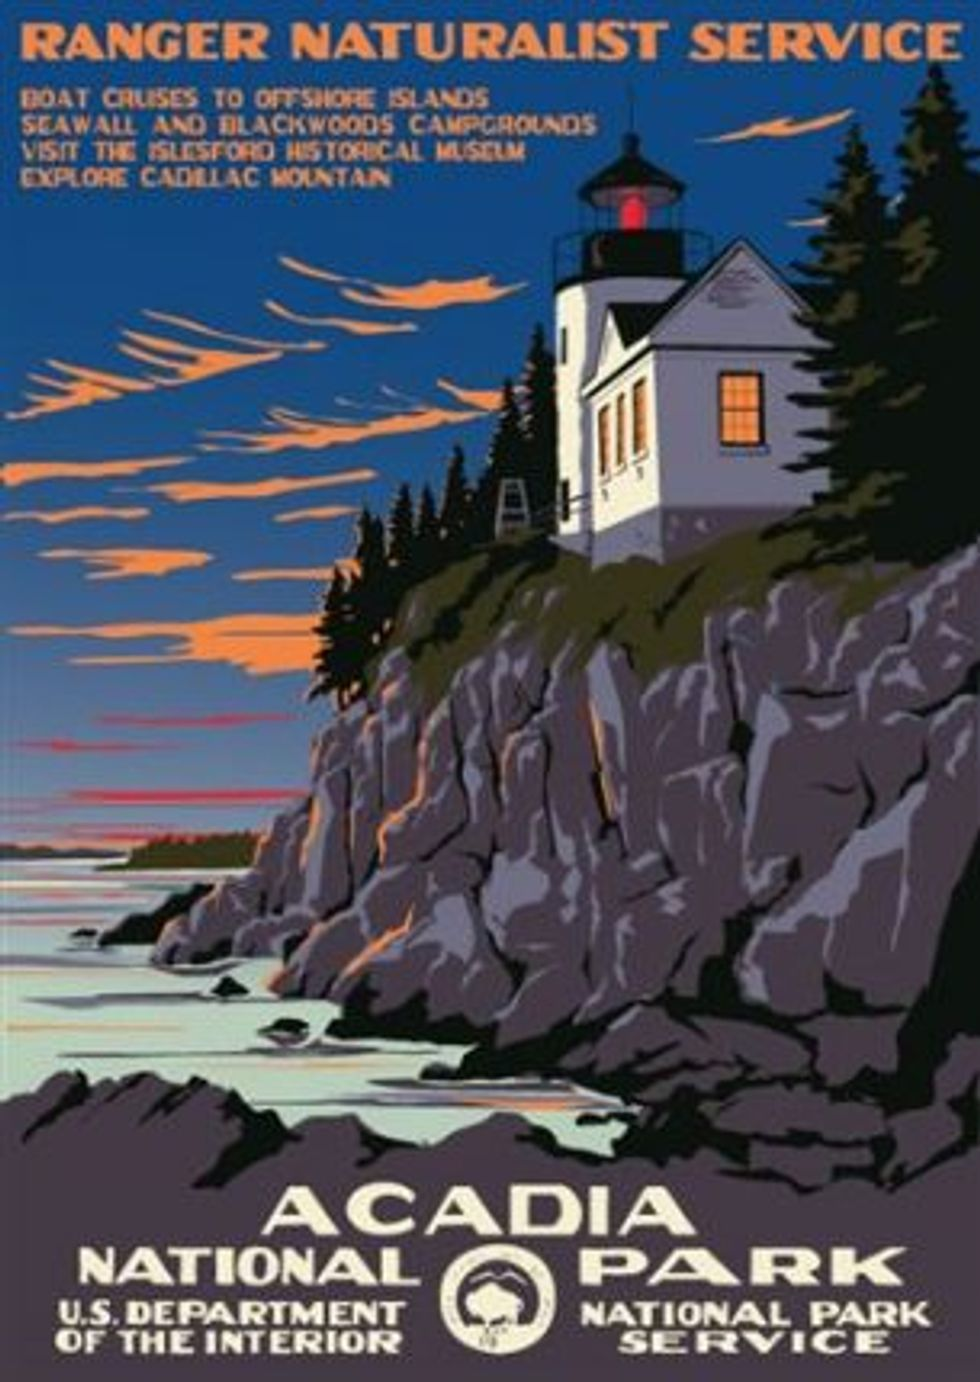 WPA poster of Acadia National Park